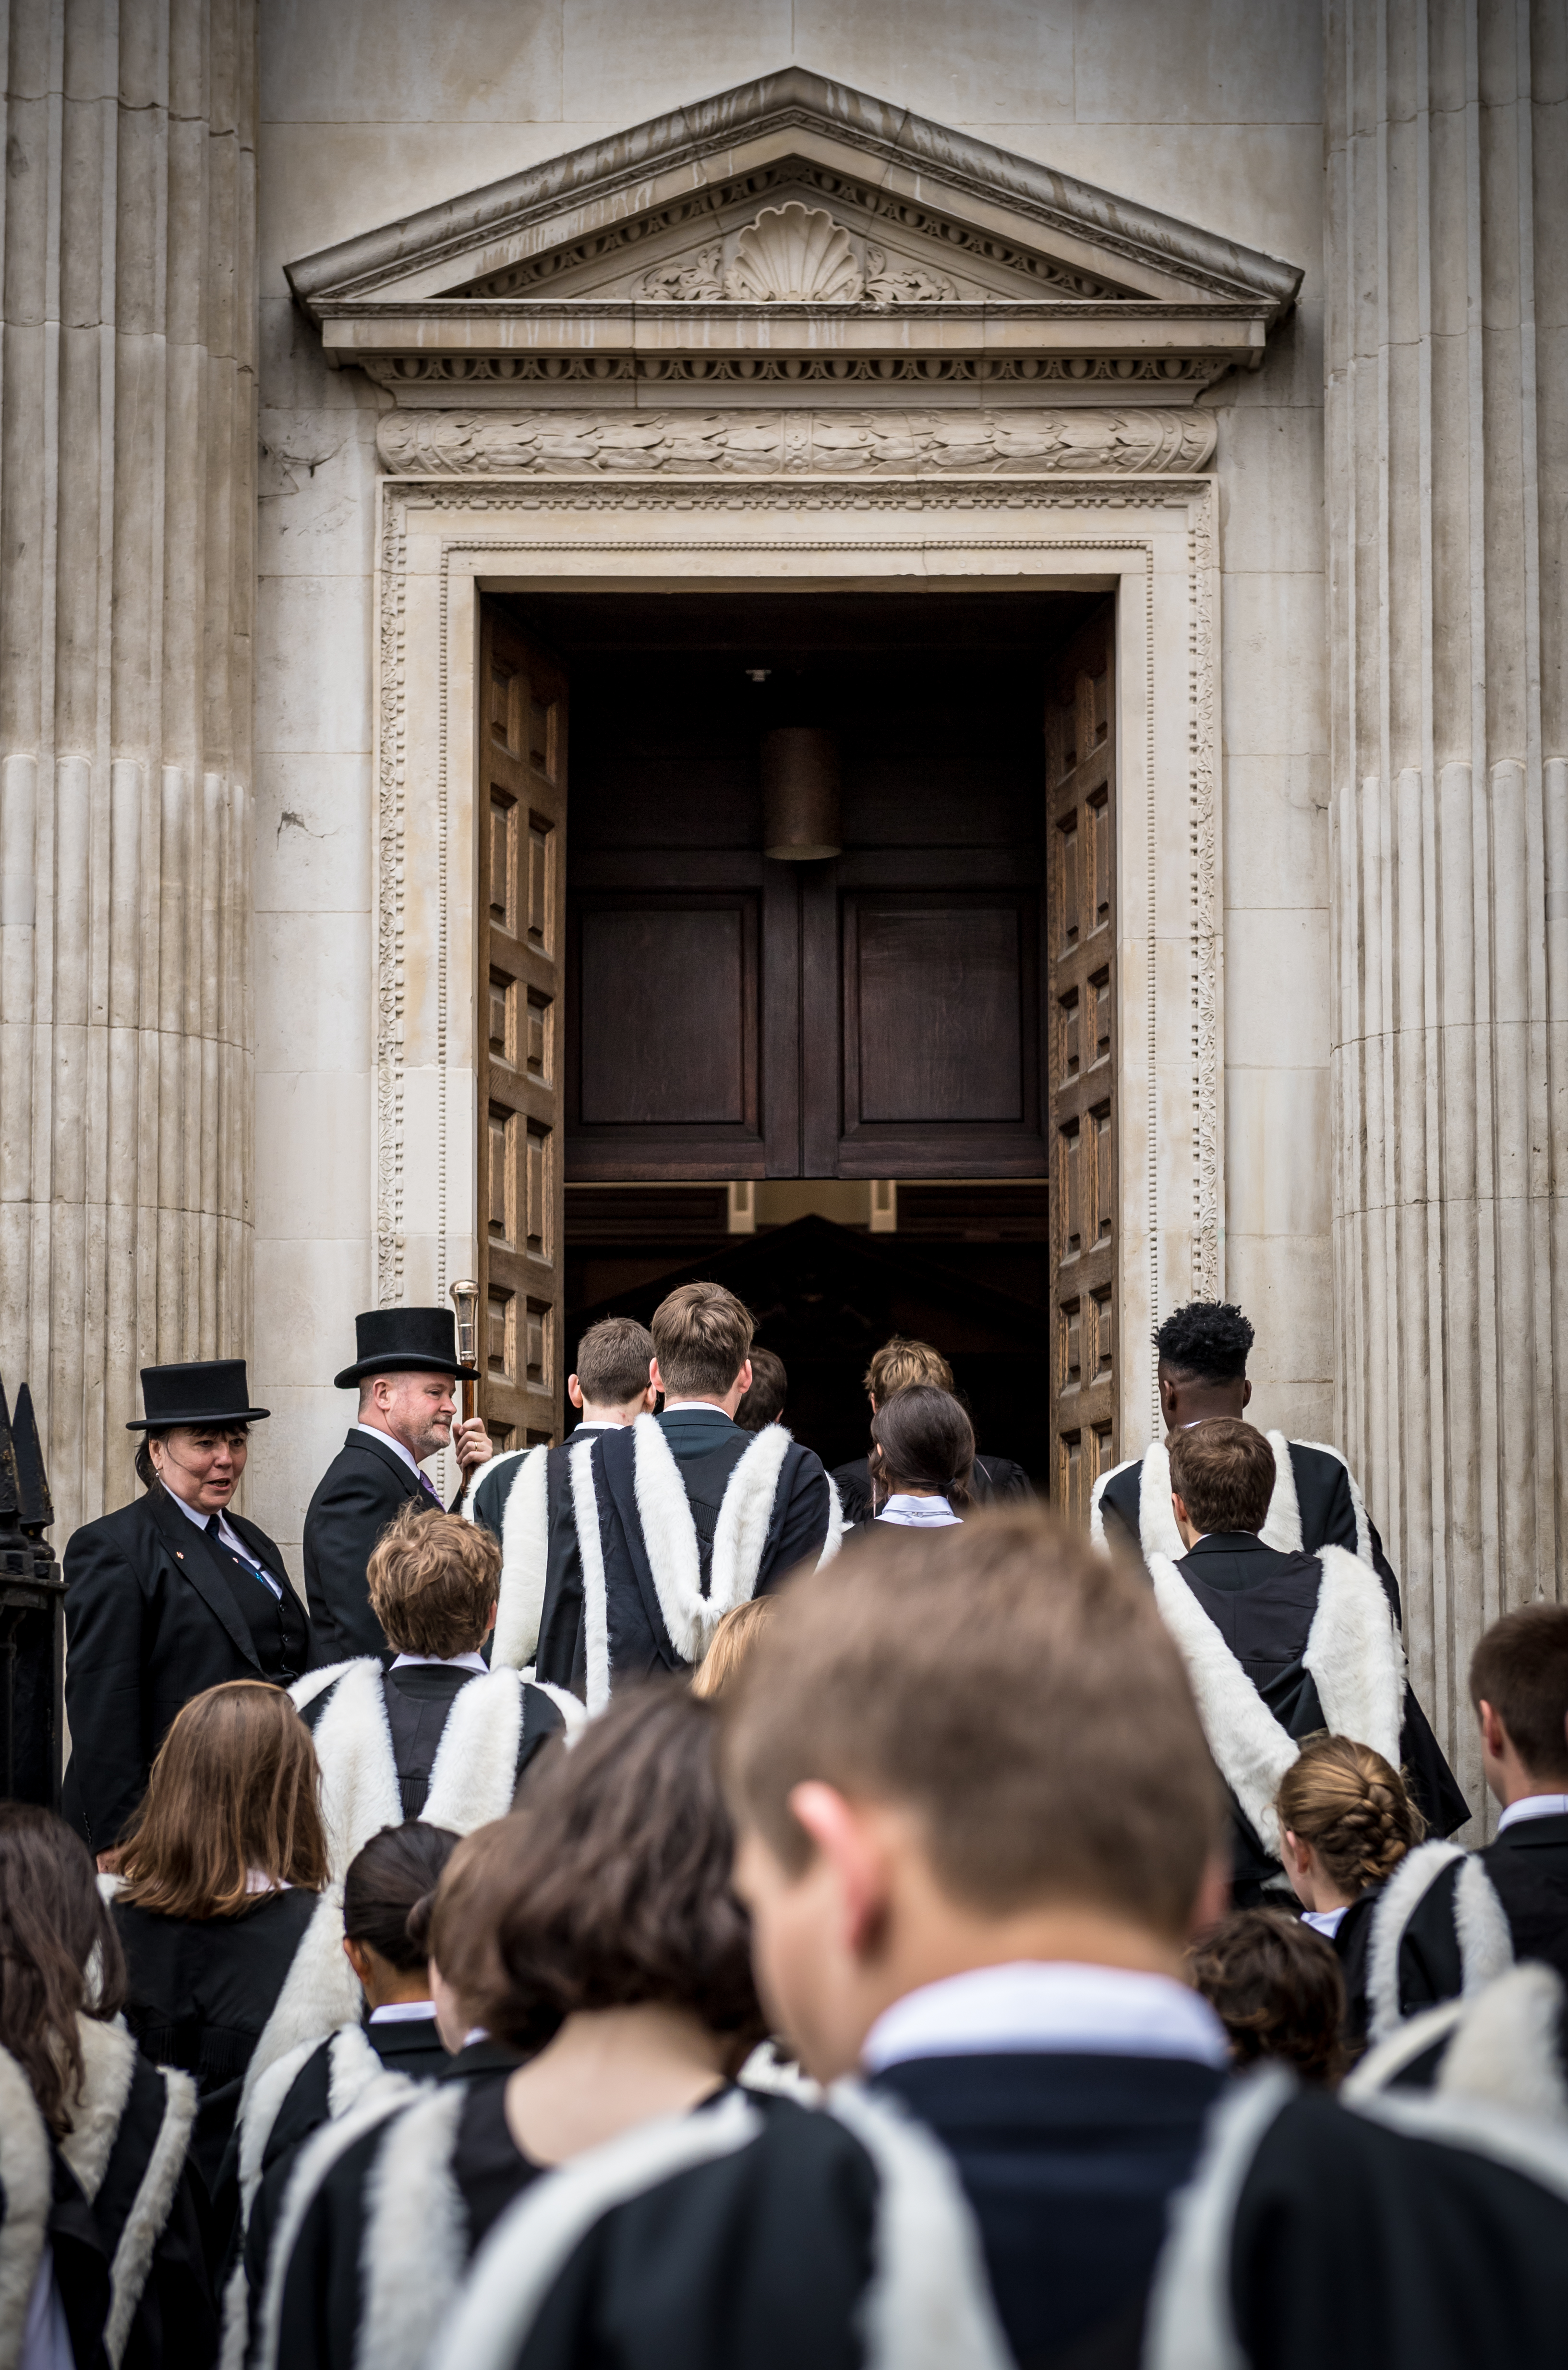 General Admission 2017 - Entering the Senate House (photo credit James Linsell-Clark)